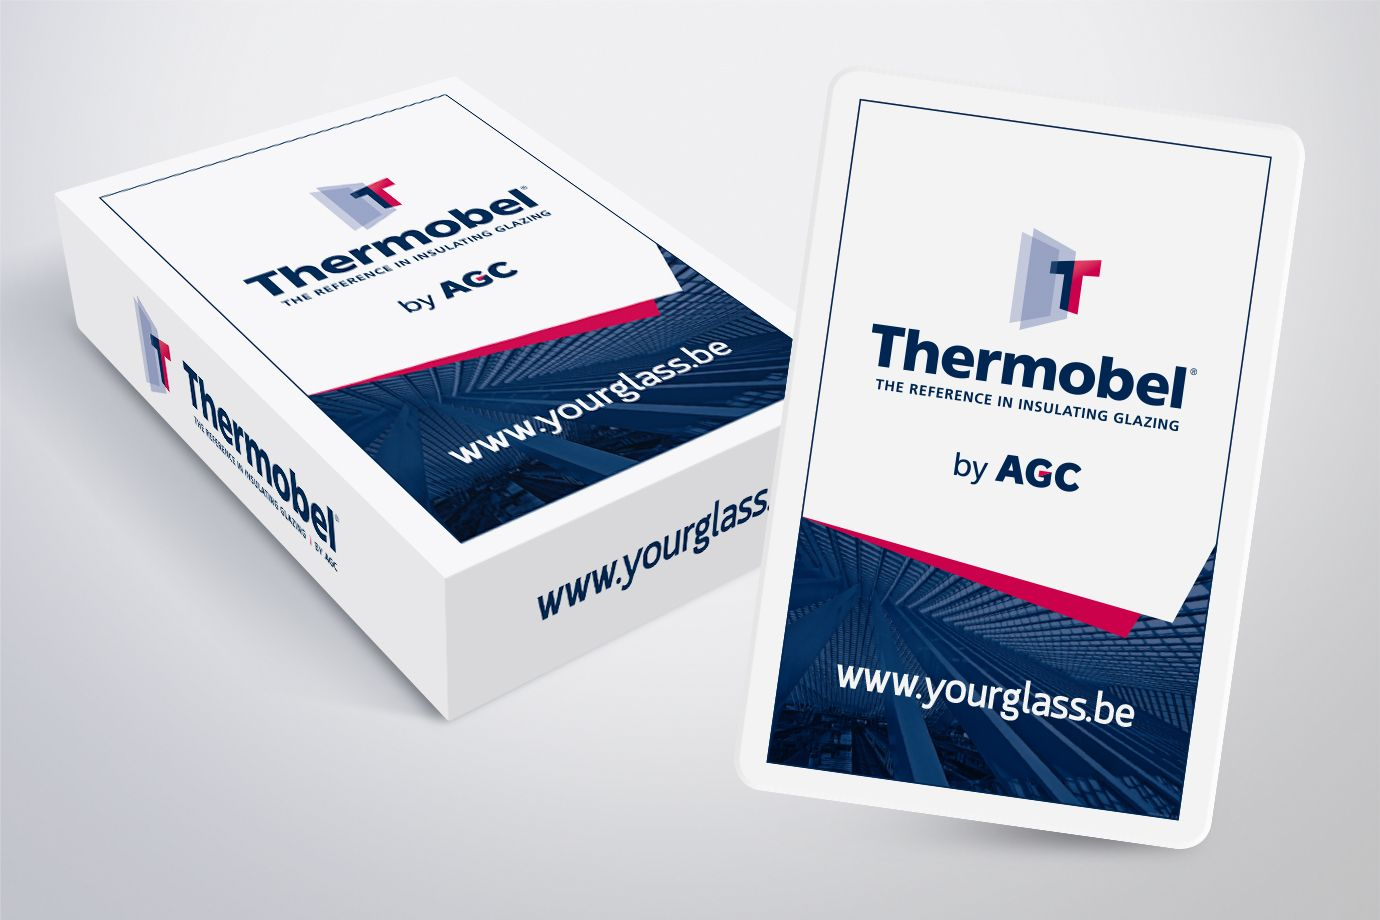 AGC Thermobel Kaartspel